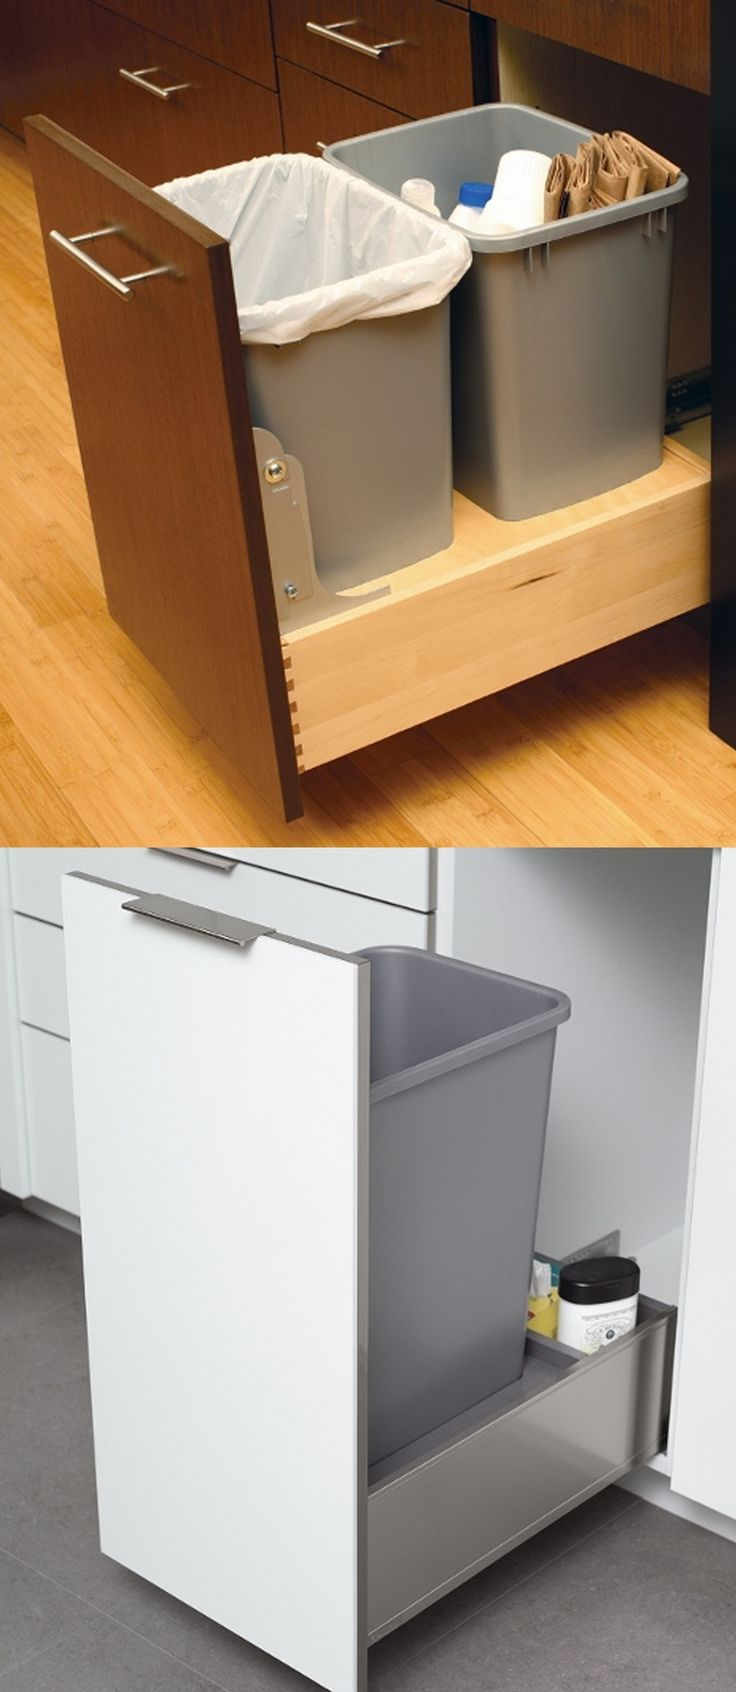 Pin On Cooking Zone Storage Ideas For The Kitchen Under counter pull out trash can